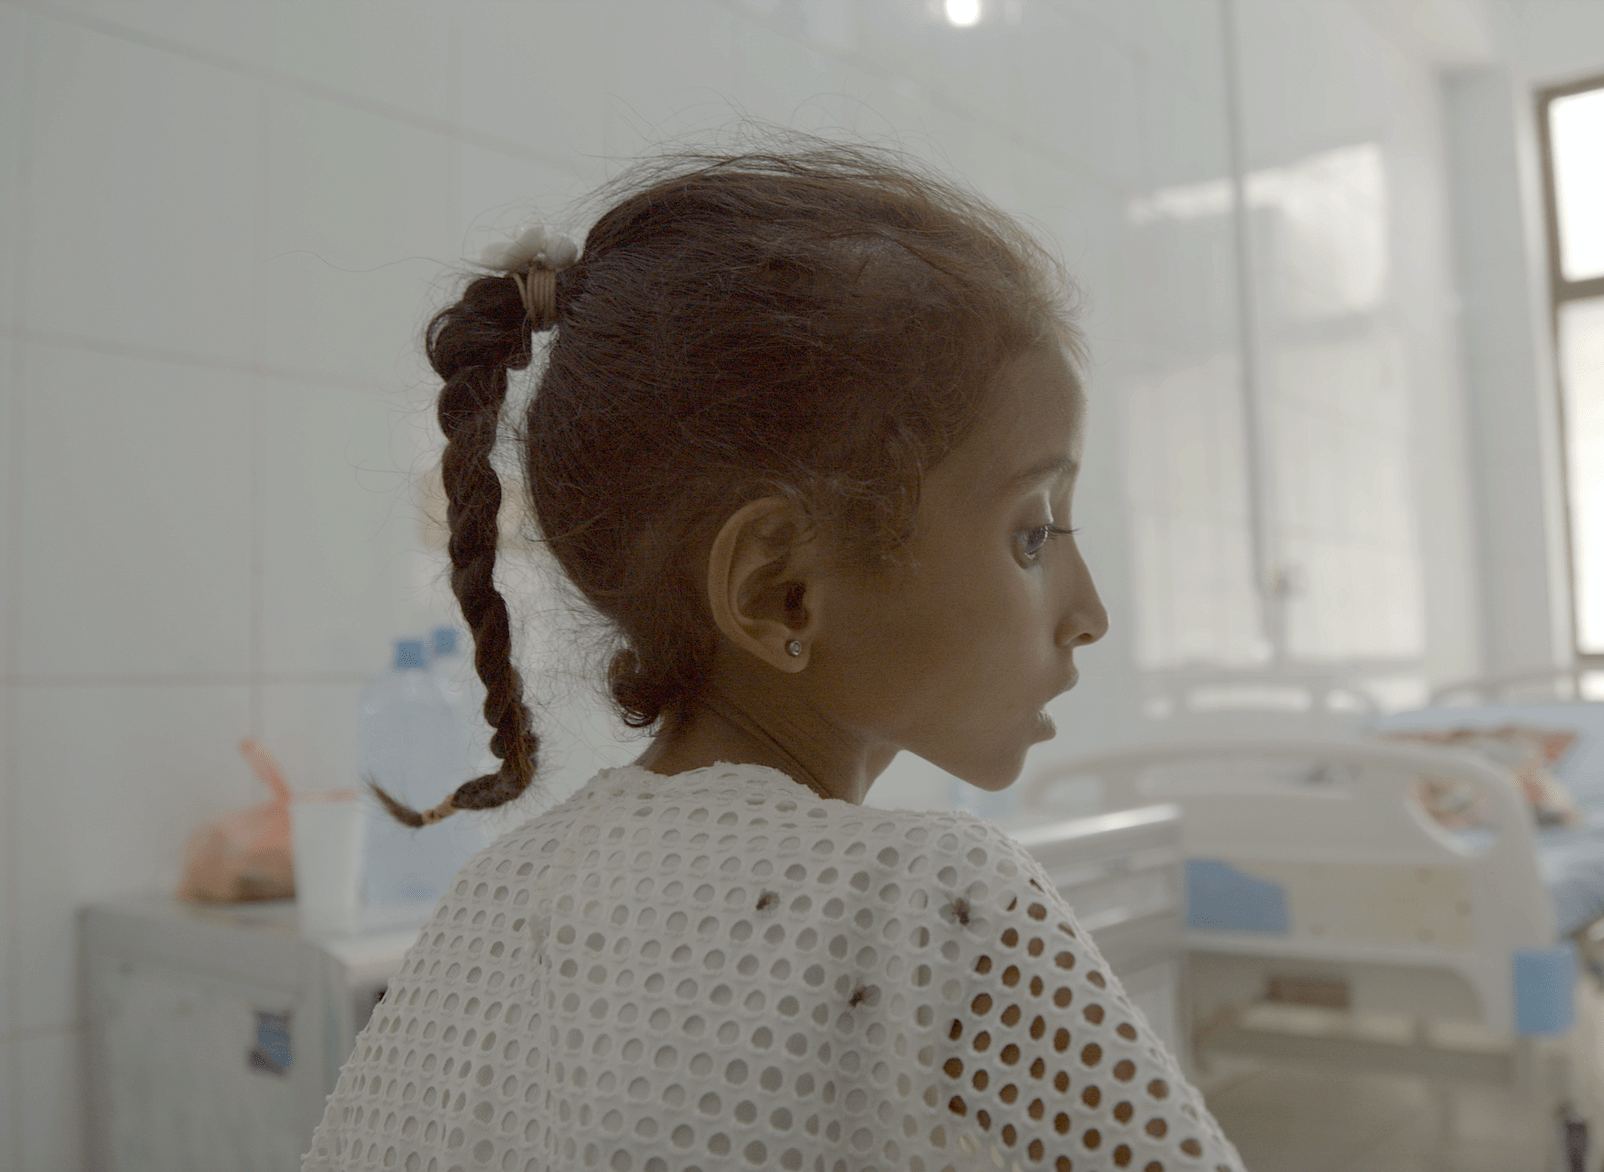 A girl in Yemen faces malnutrition in the oscar-nominated short documentary Hunger Ward